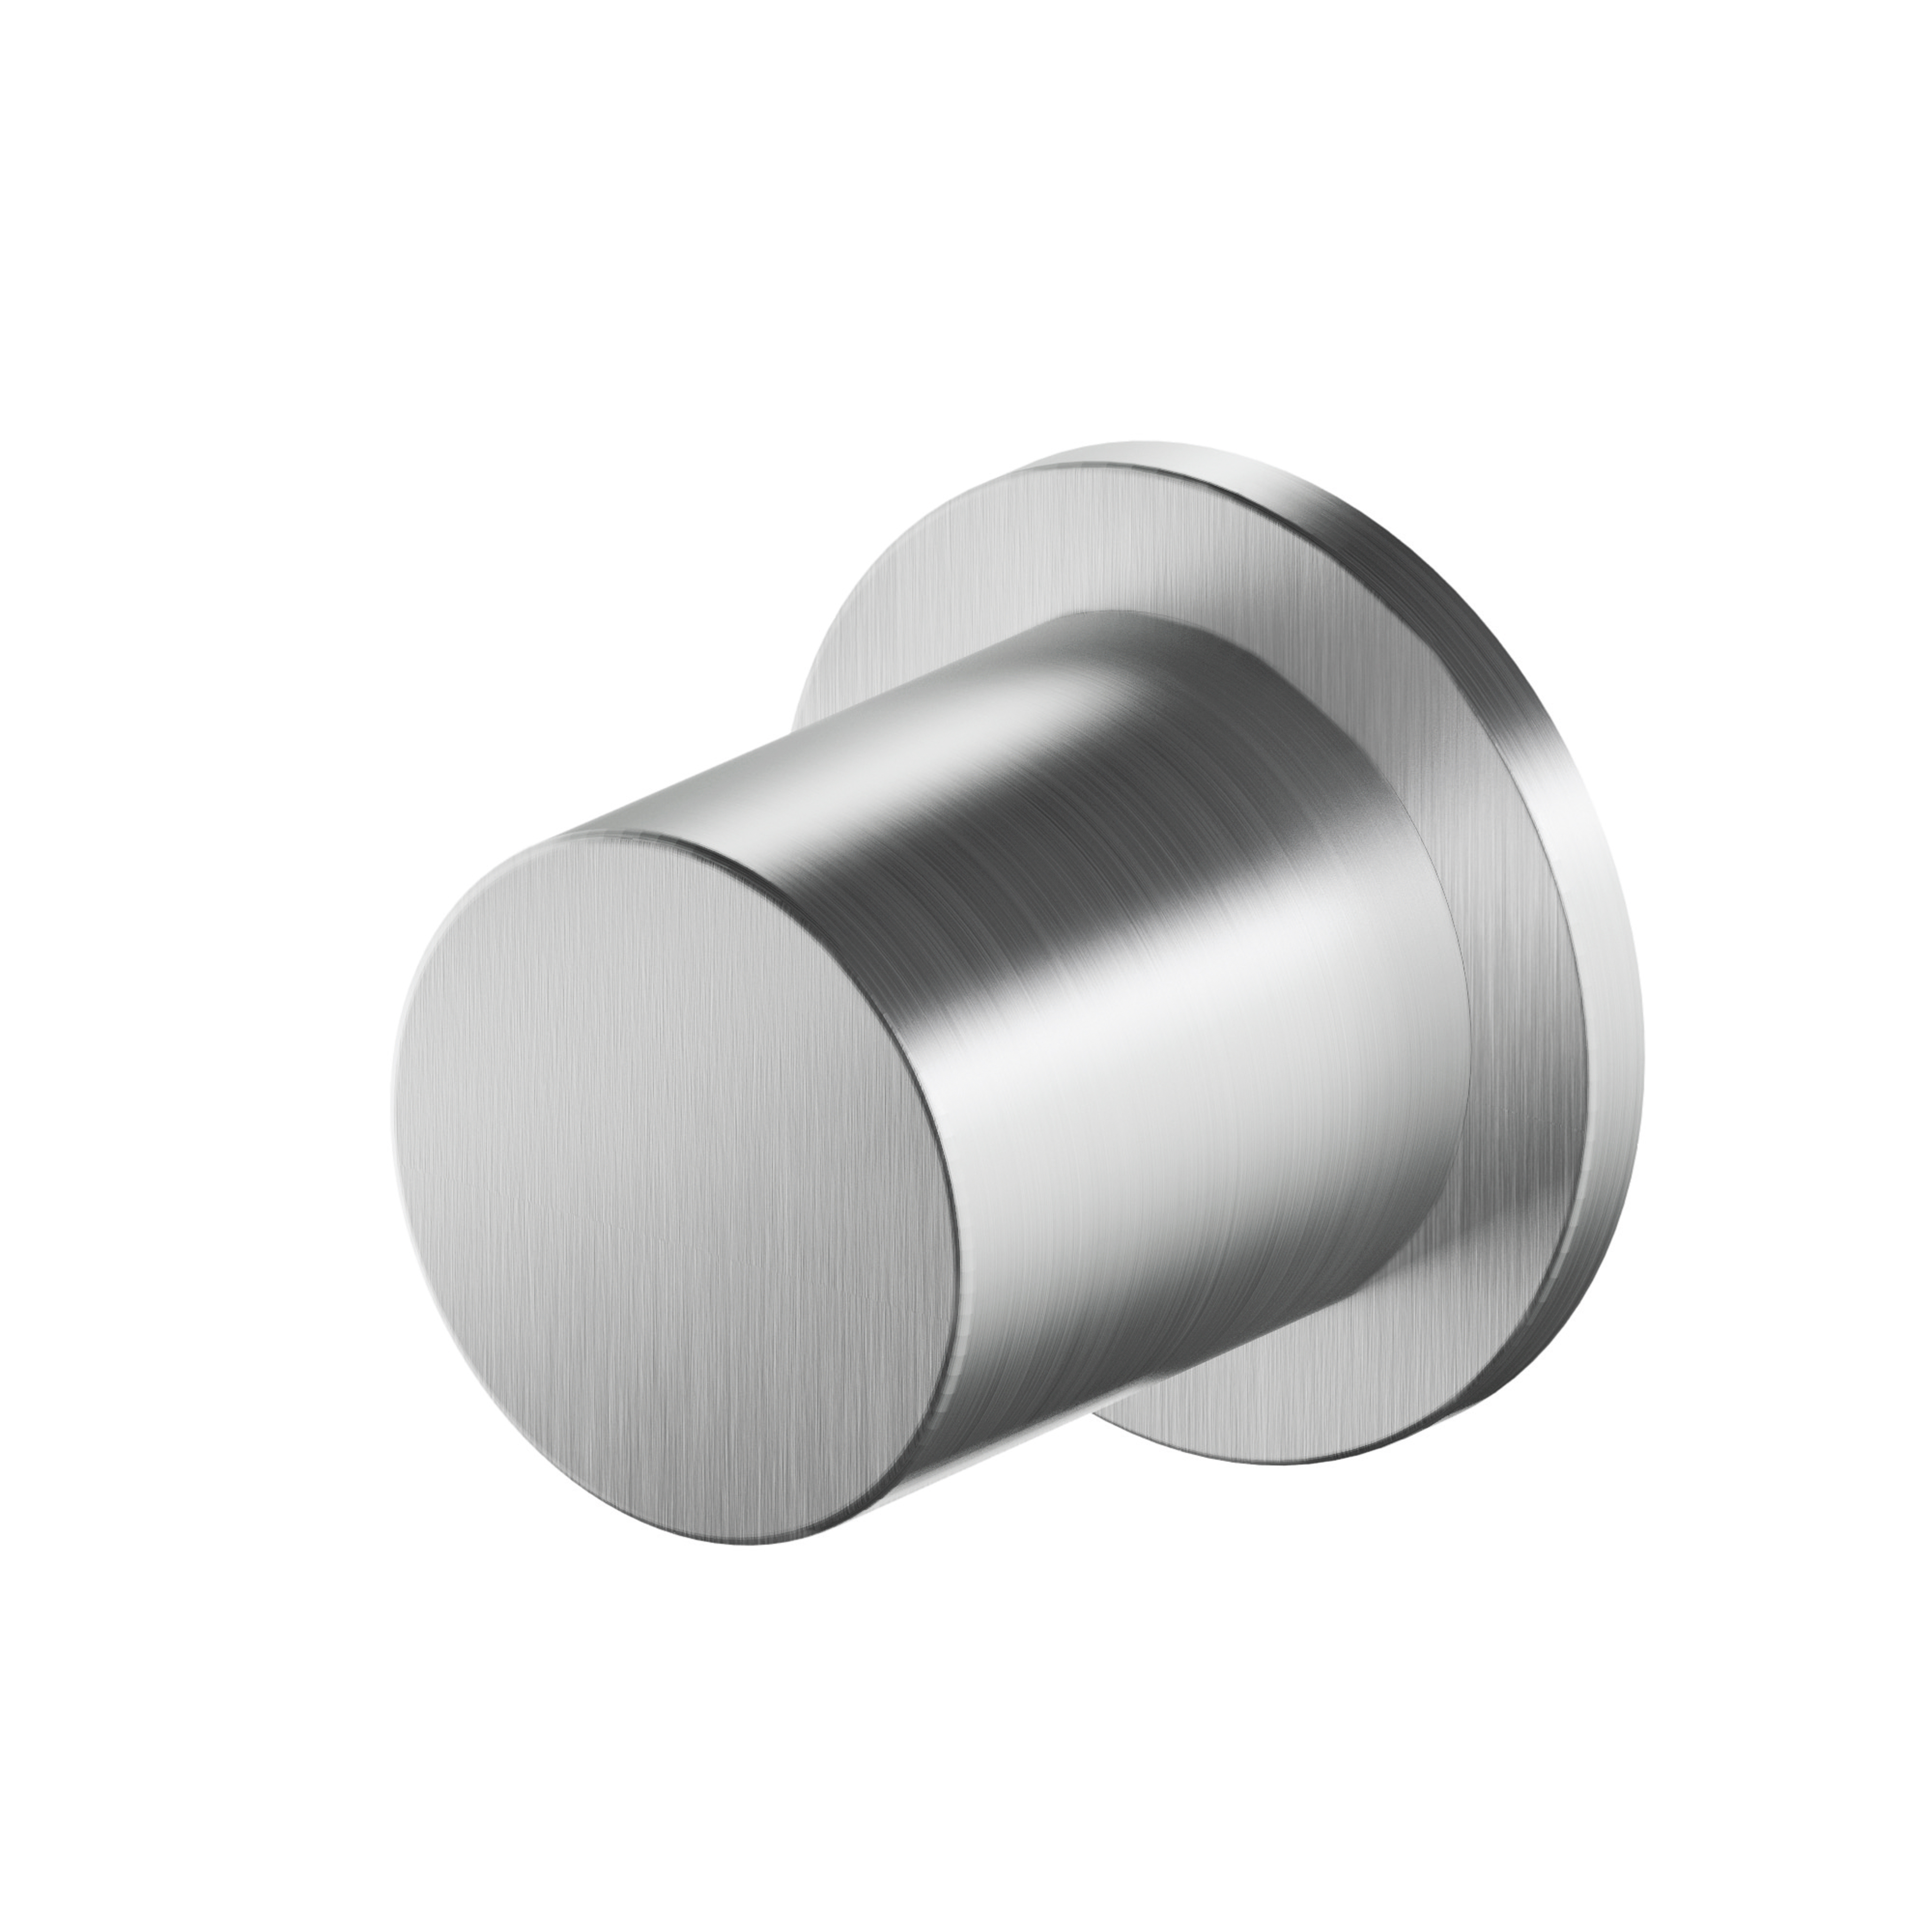 MGS AC974 Wall Mounted Water Outlet - matte stainless